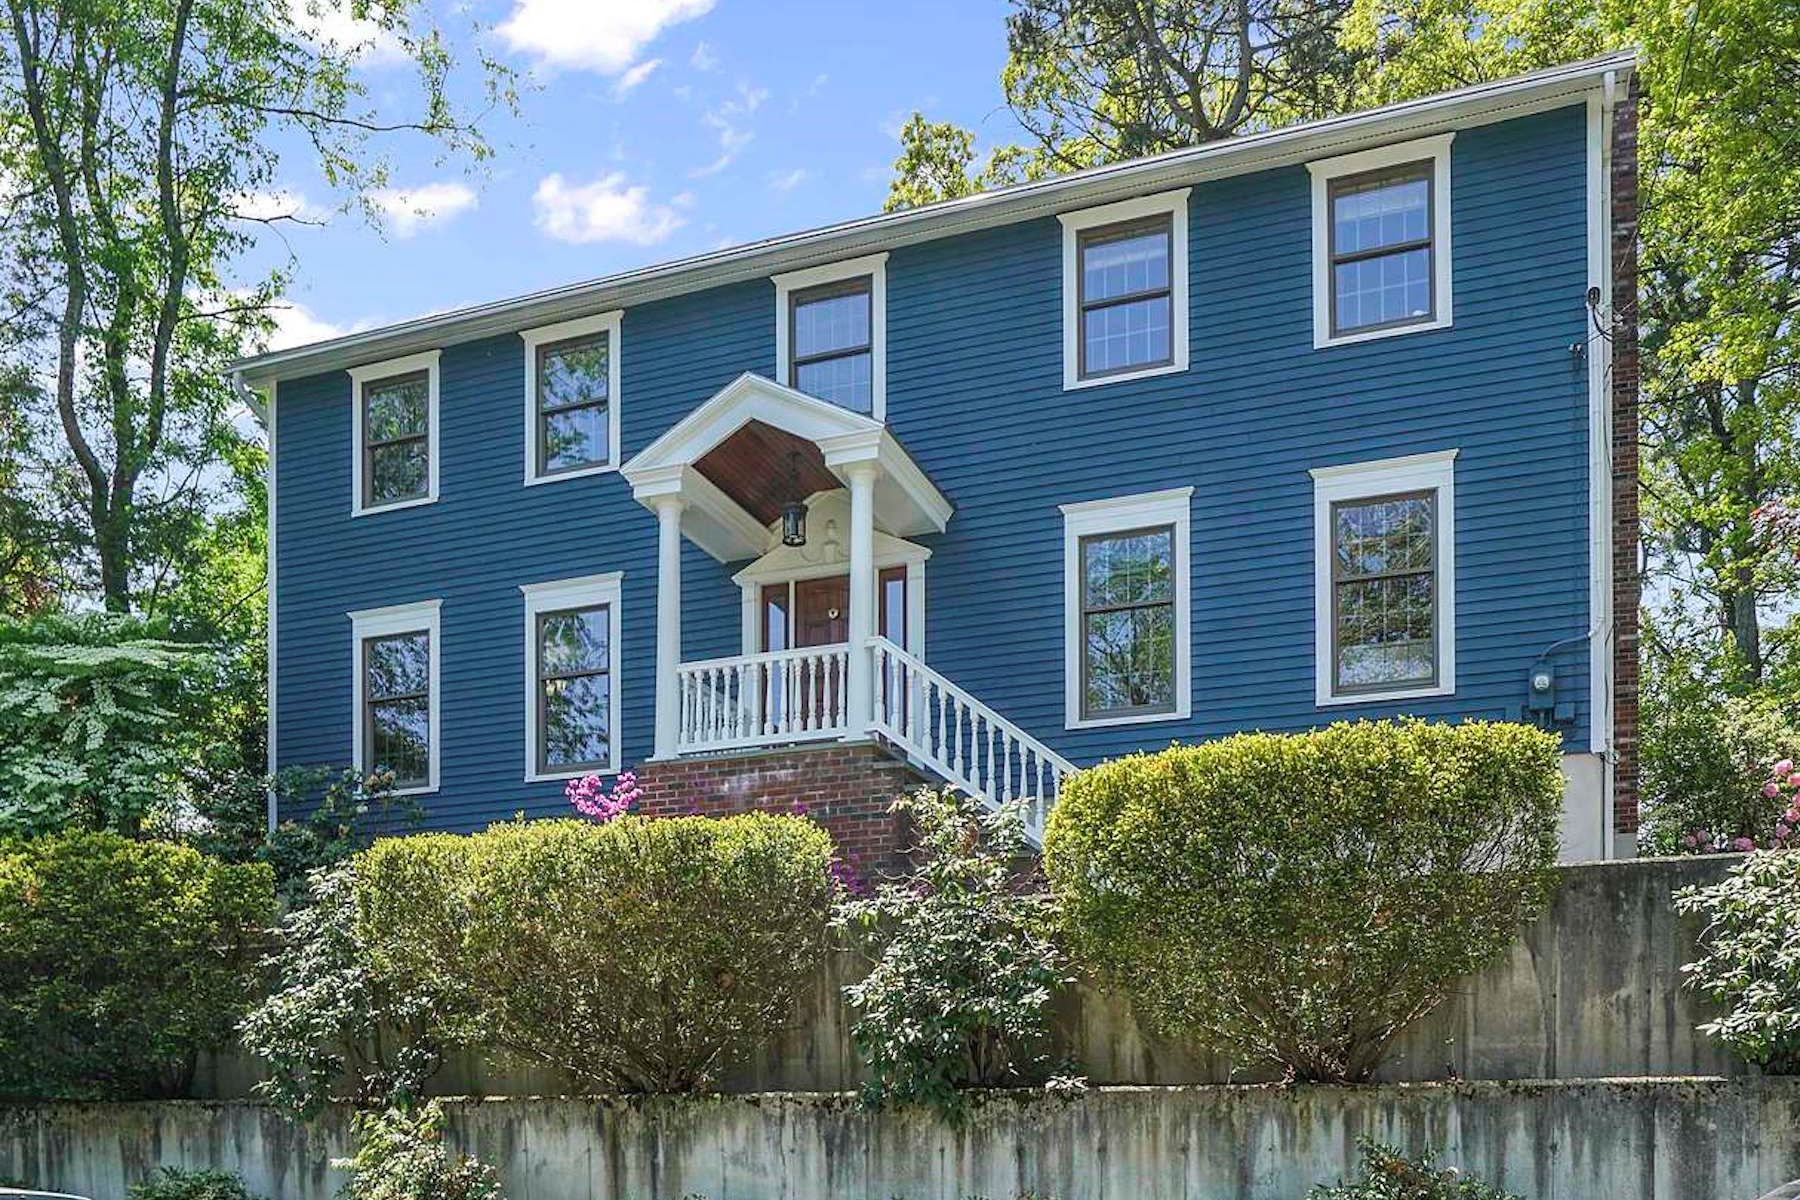 Single Family Homes for Sale at Rare Opportunity To Enjoy Mystic Lake Views 126 Sagamore Ave Medford, Massachusetts 02155 United States